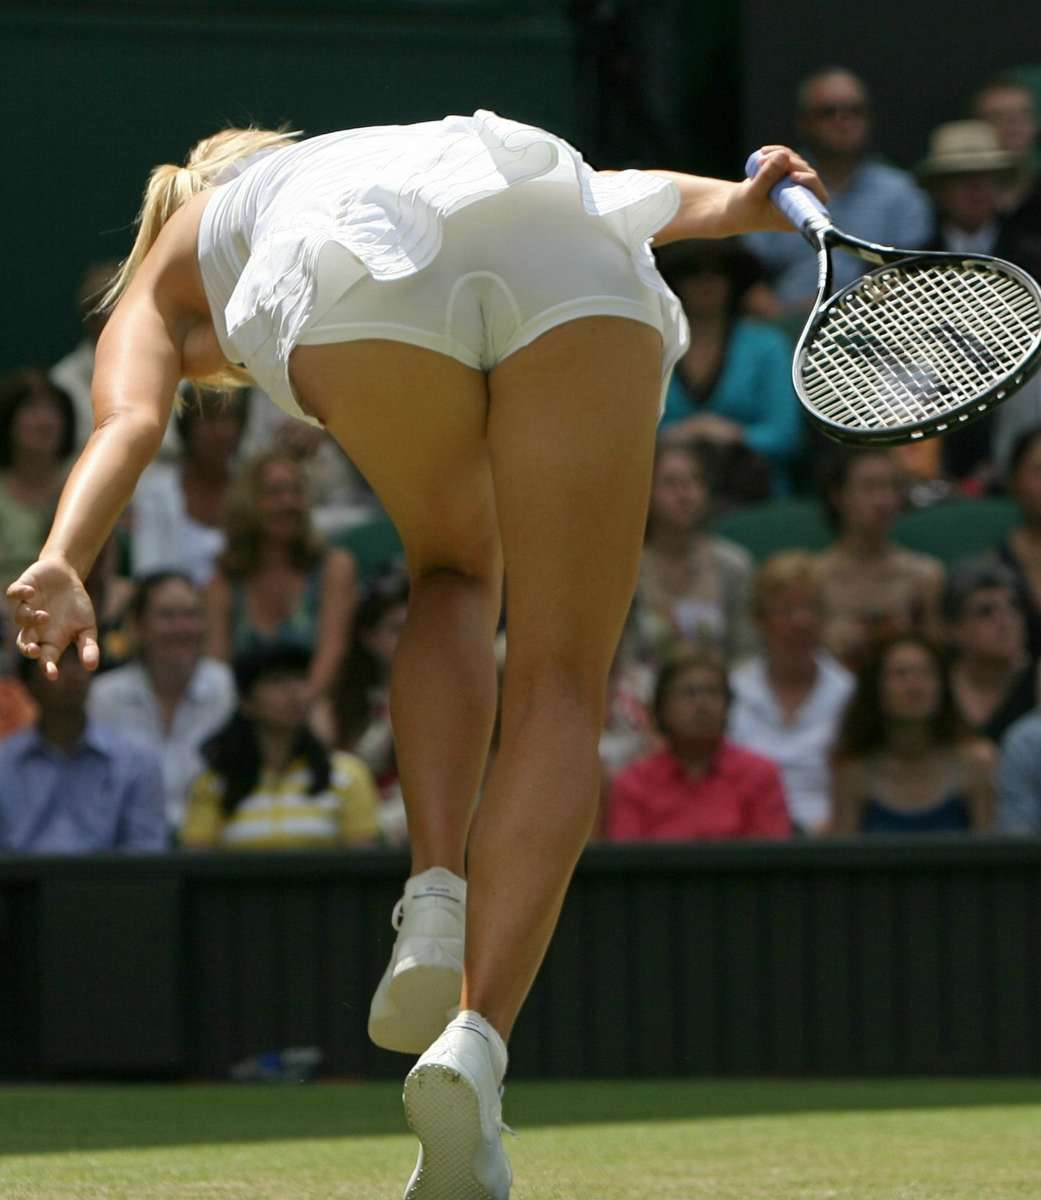 Hot ass in action of Maria Sharapova